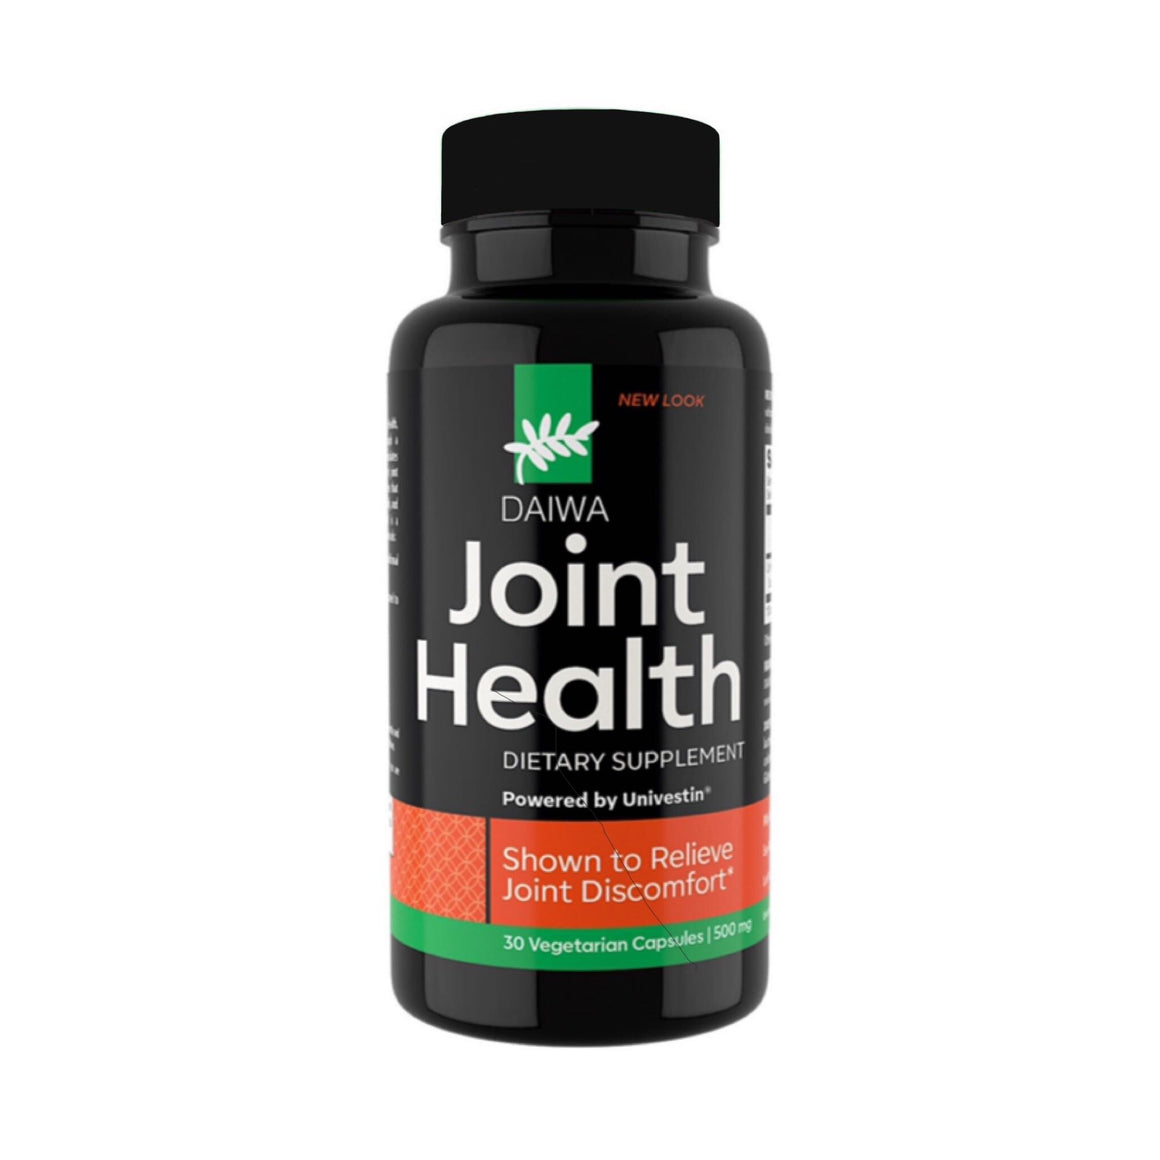 Daiwa Joint Health - Daiwa Health Development, Inc.